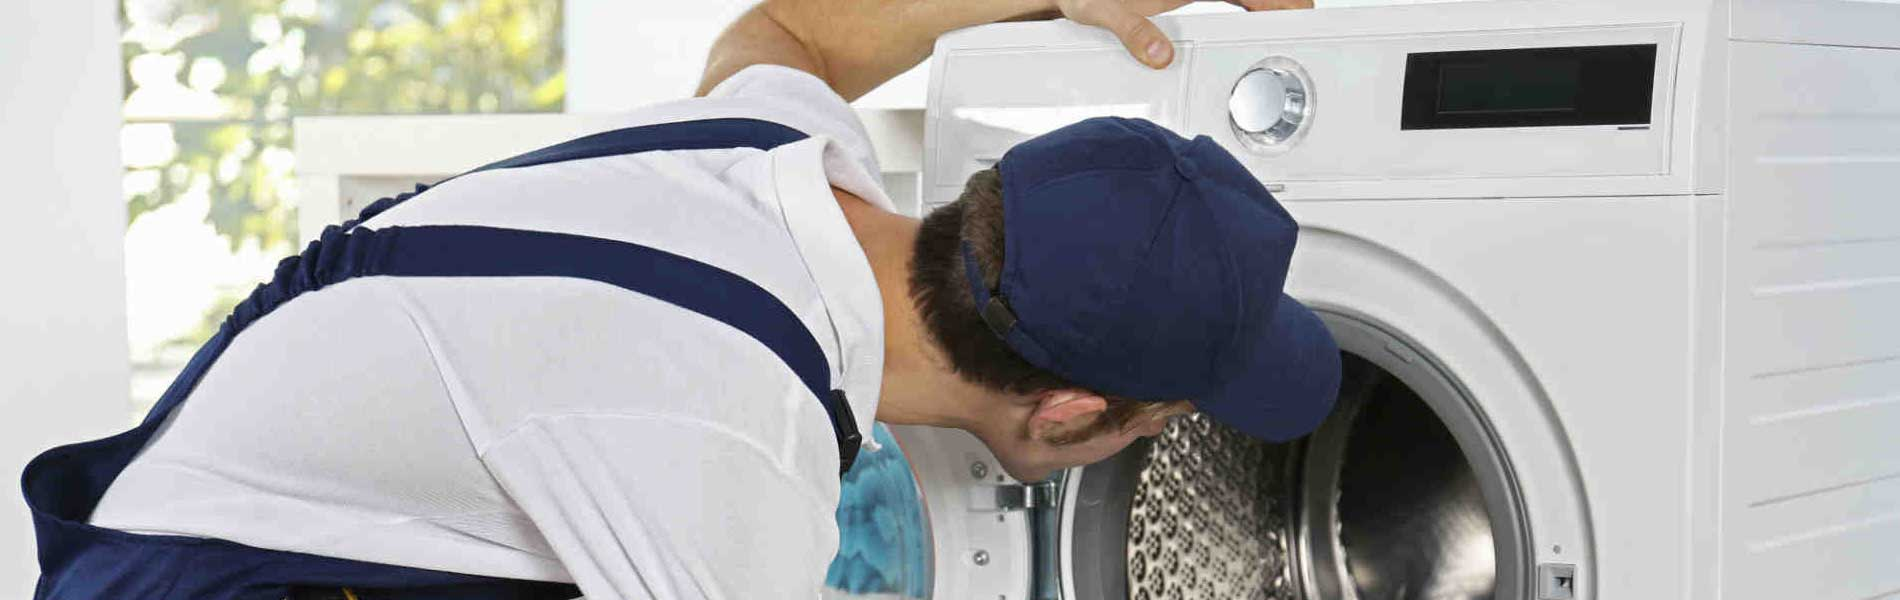 Videocon Washing Machine Service in Pulianthope